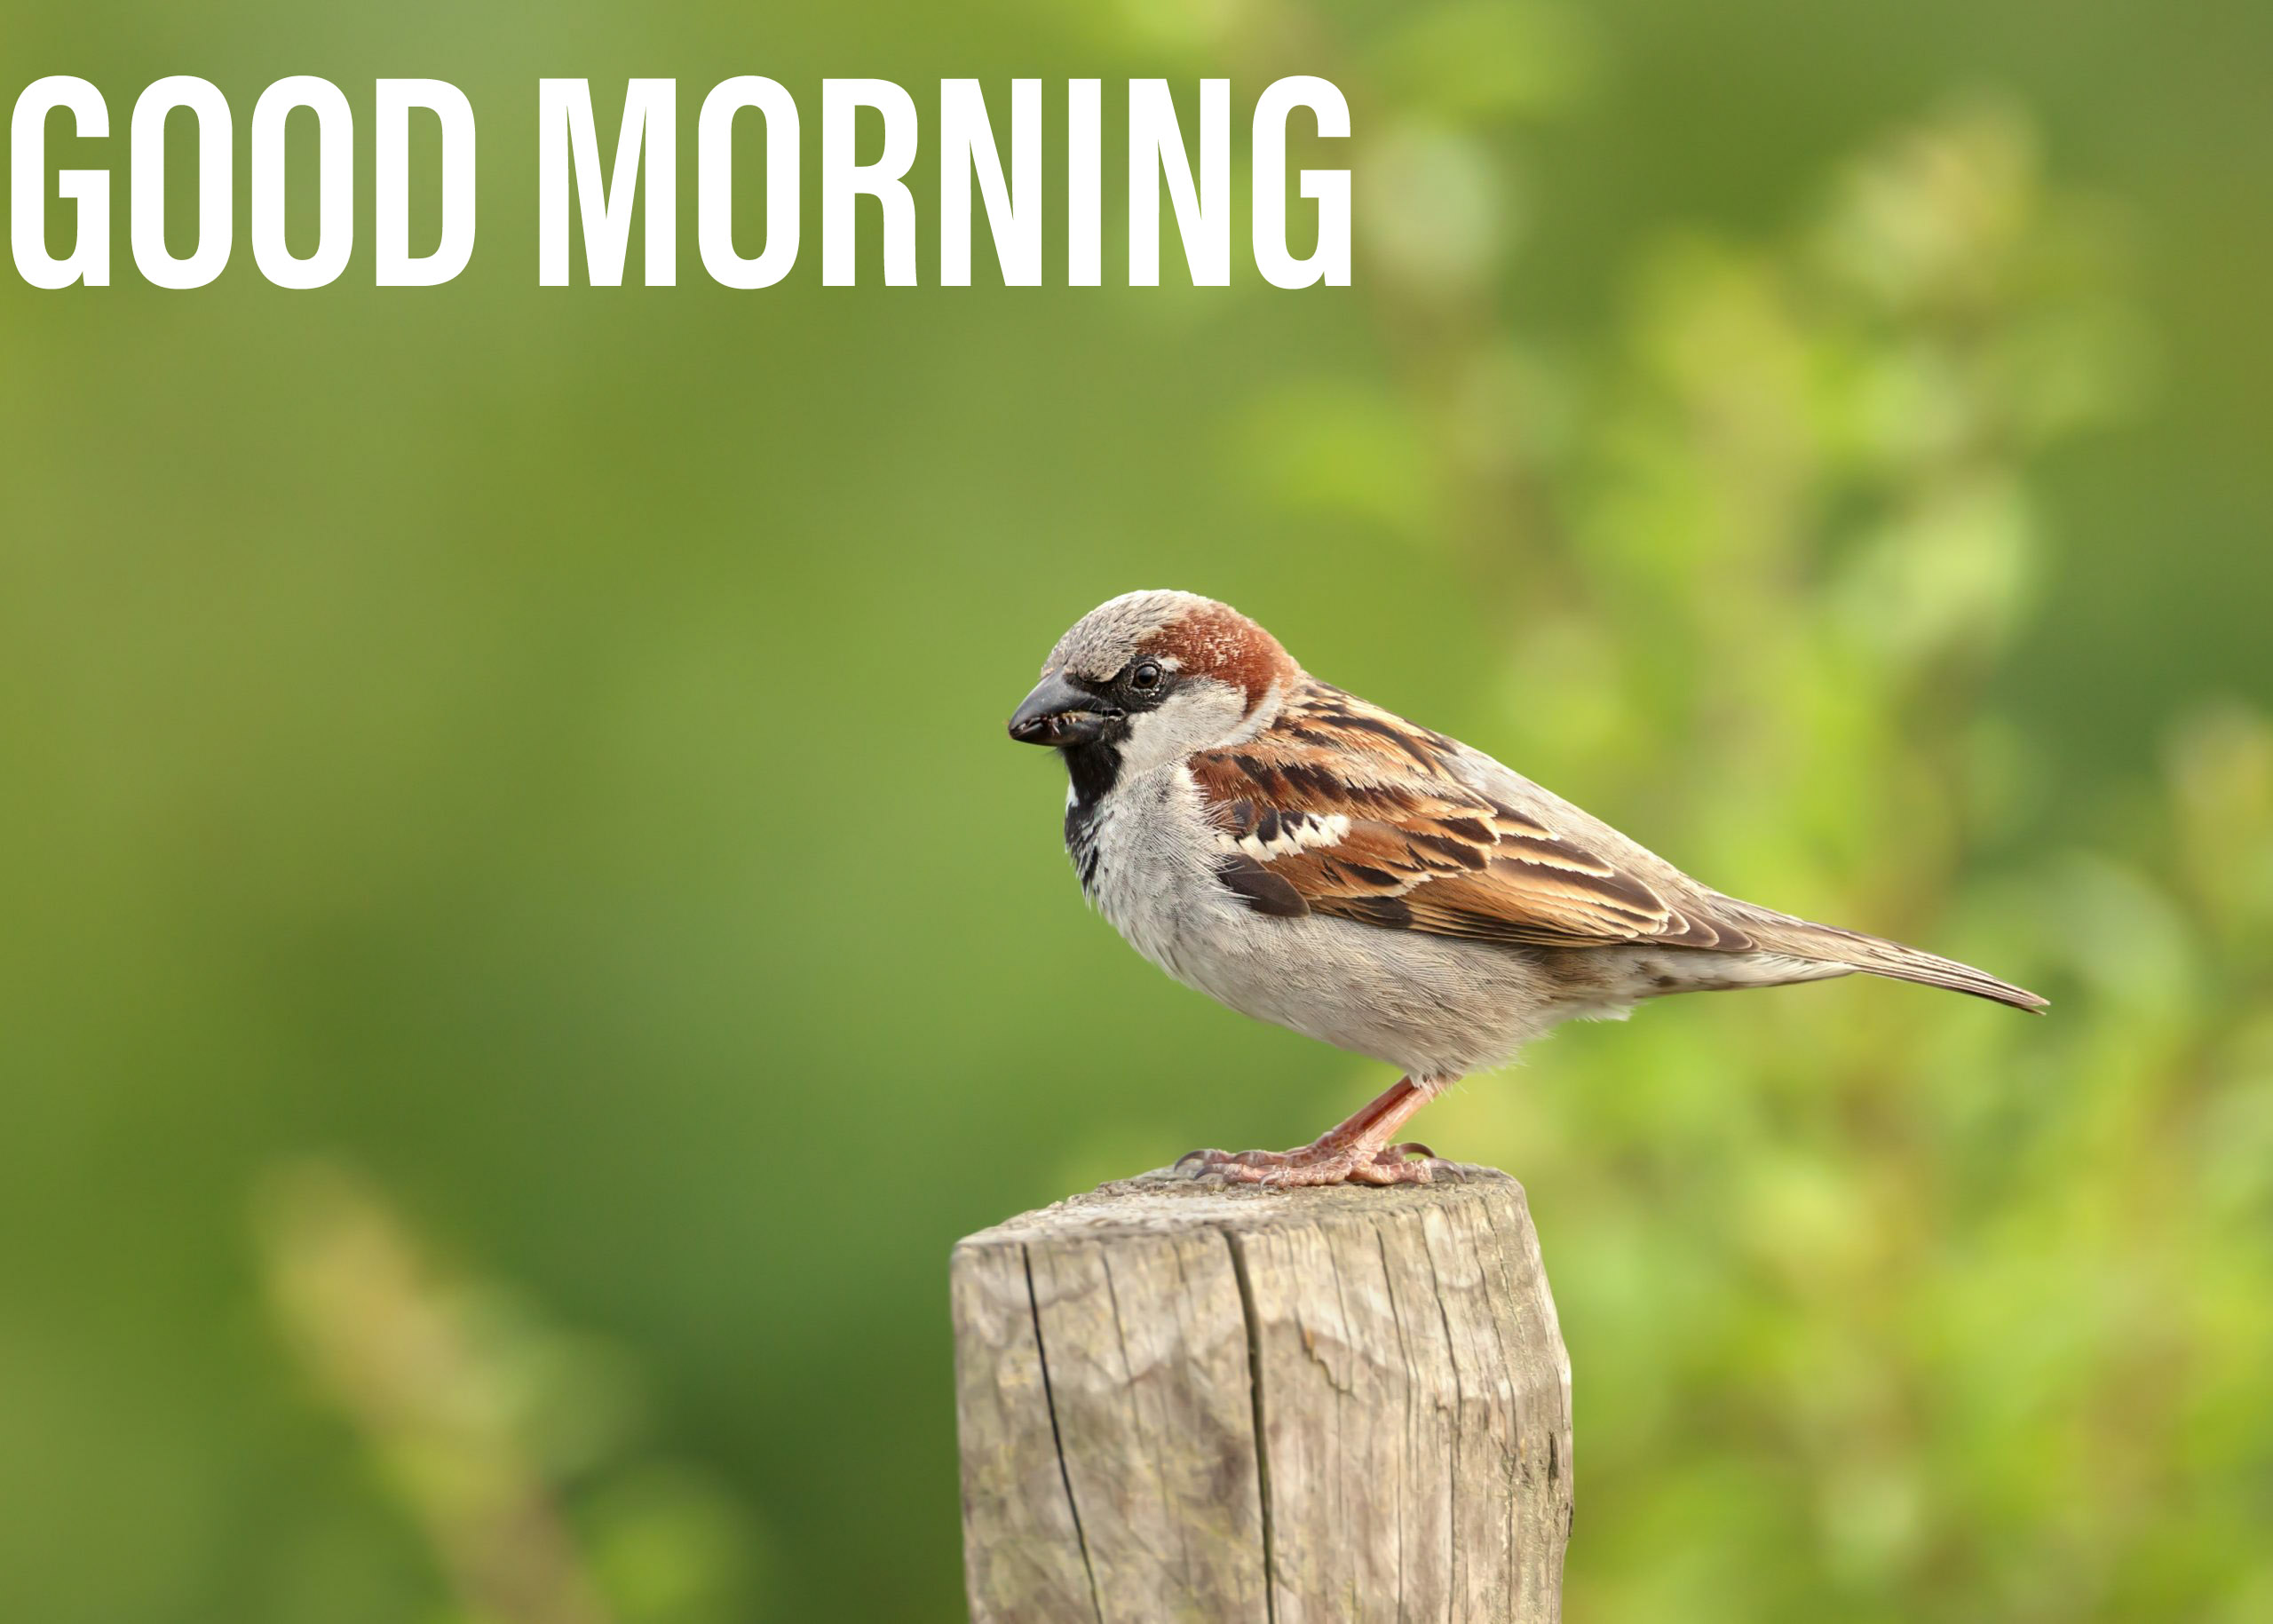 Good morning image sparrow